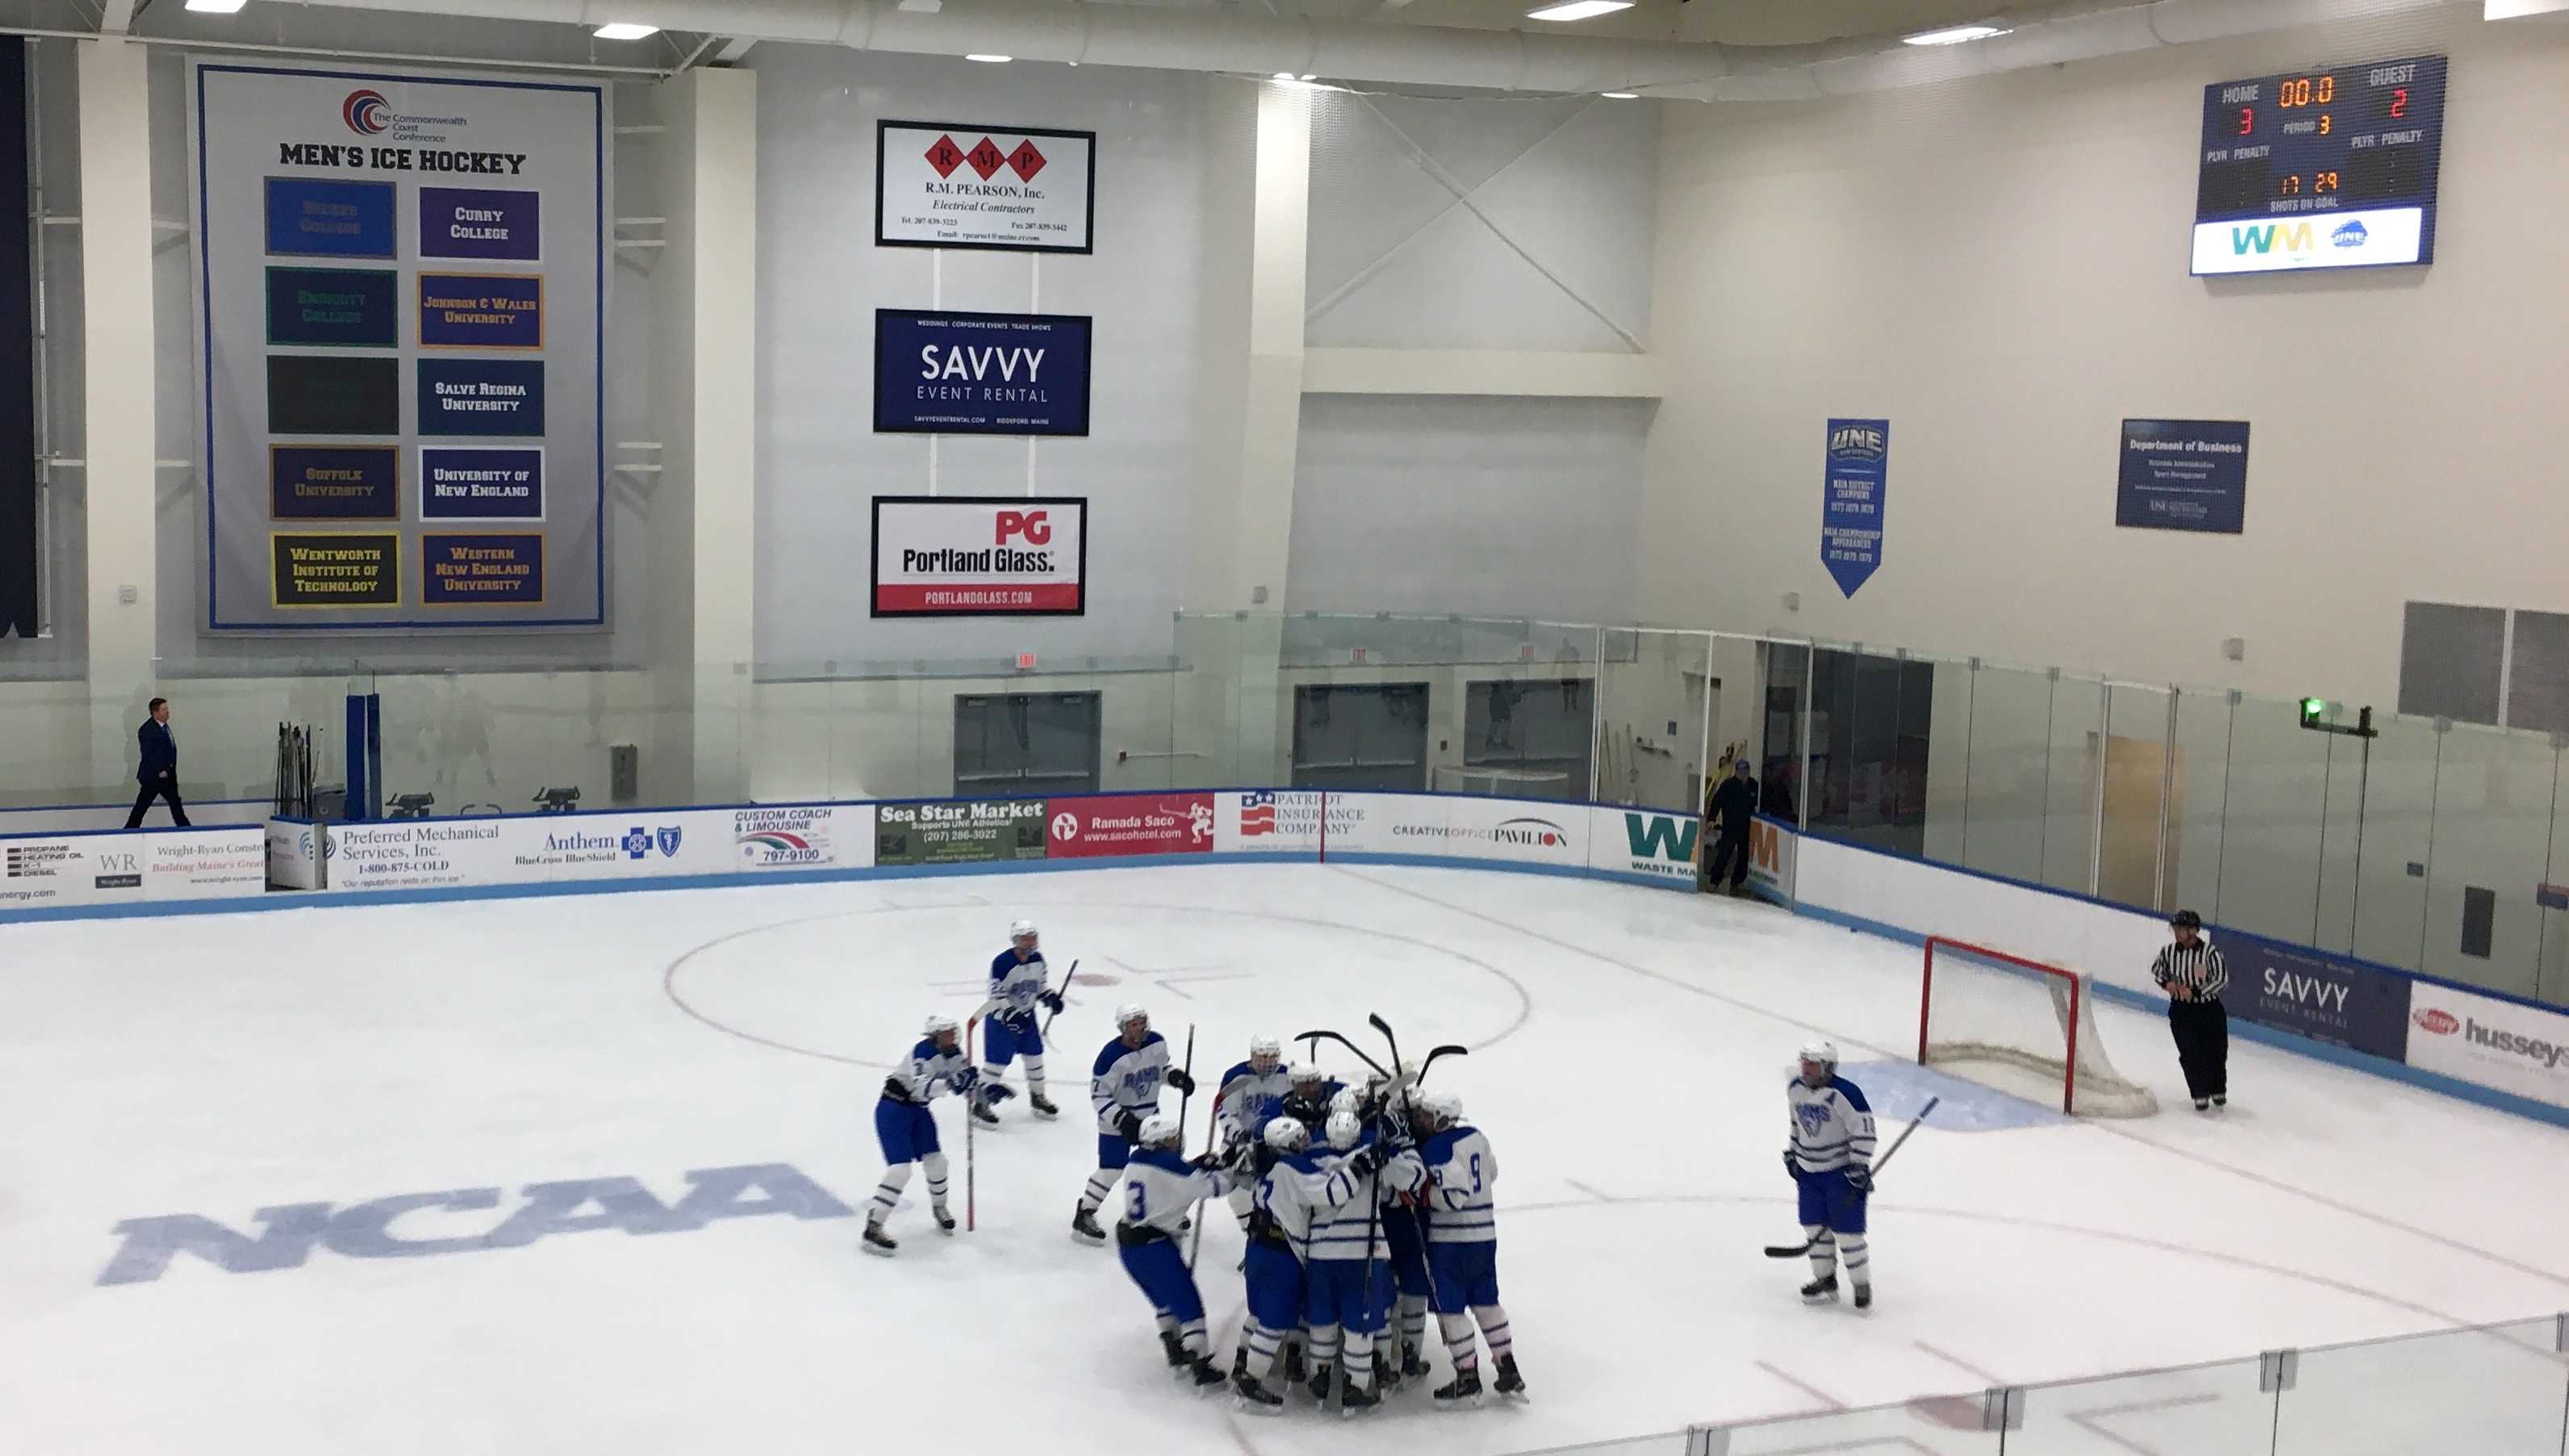 The team celebrates after an exciting 3-2 win over Cape Elizabeth in January.